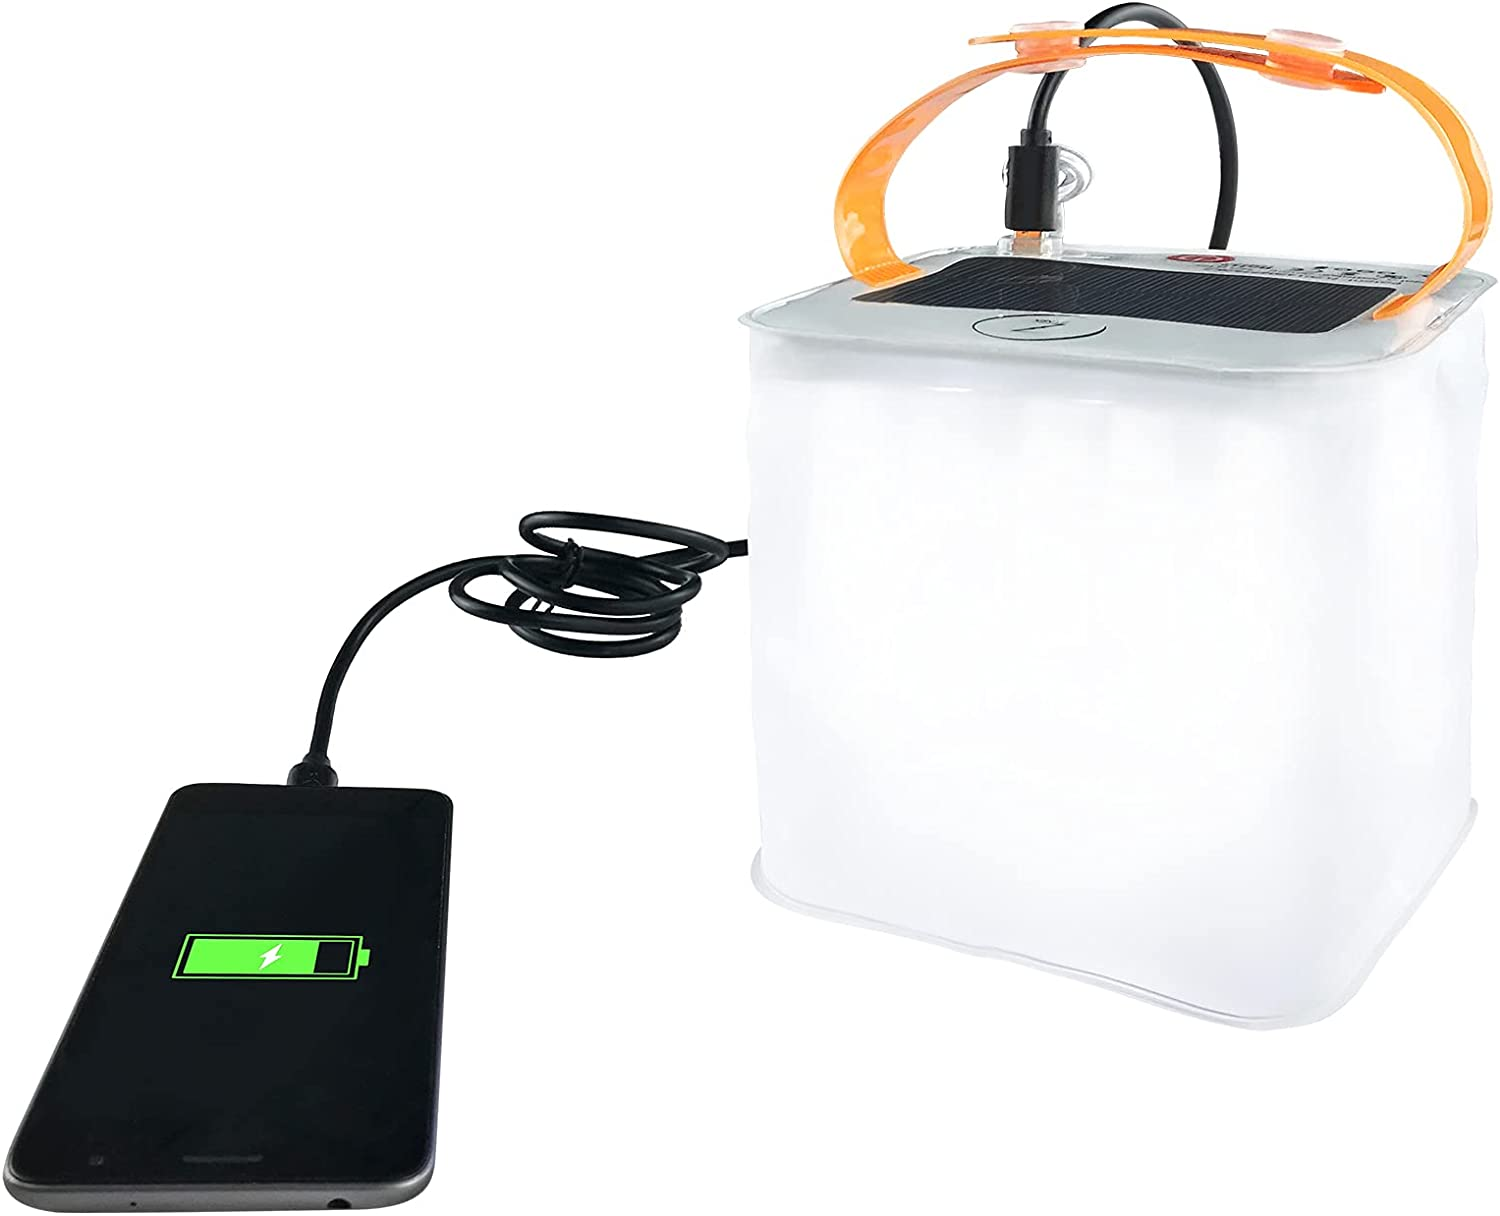 Solar Lantern Deluxe 2-in-1 Phone Charger for Camping Great Max 85% OFF Lanterns